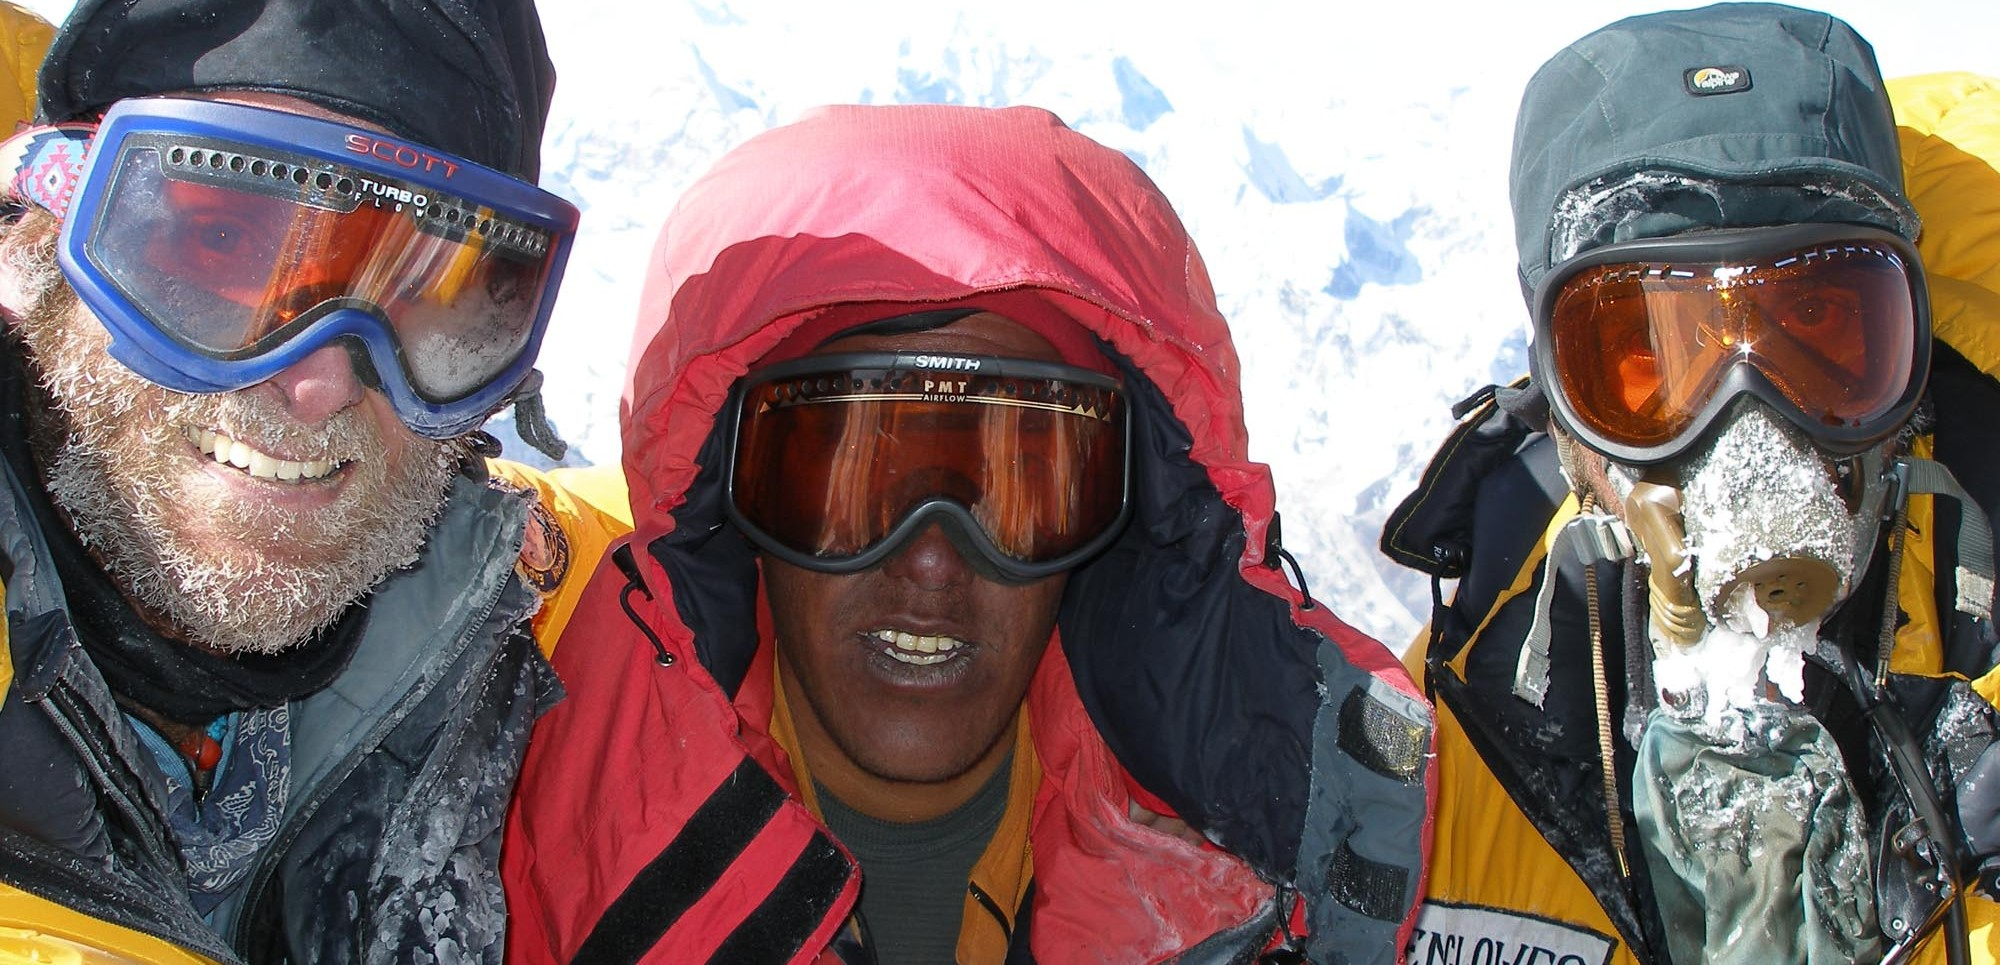 Tom Clowes, Sherpa Pasang Dawa and Ben Clowes on the summit of Everest